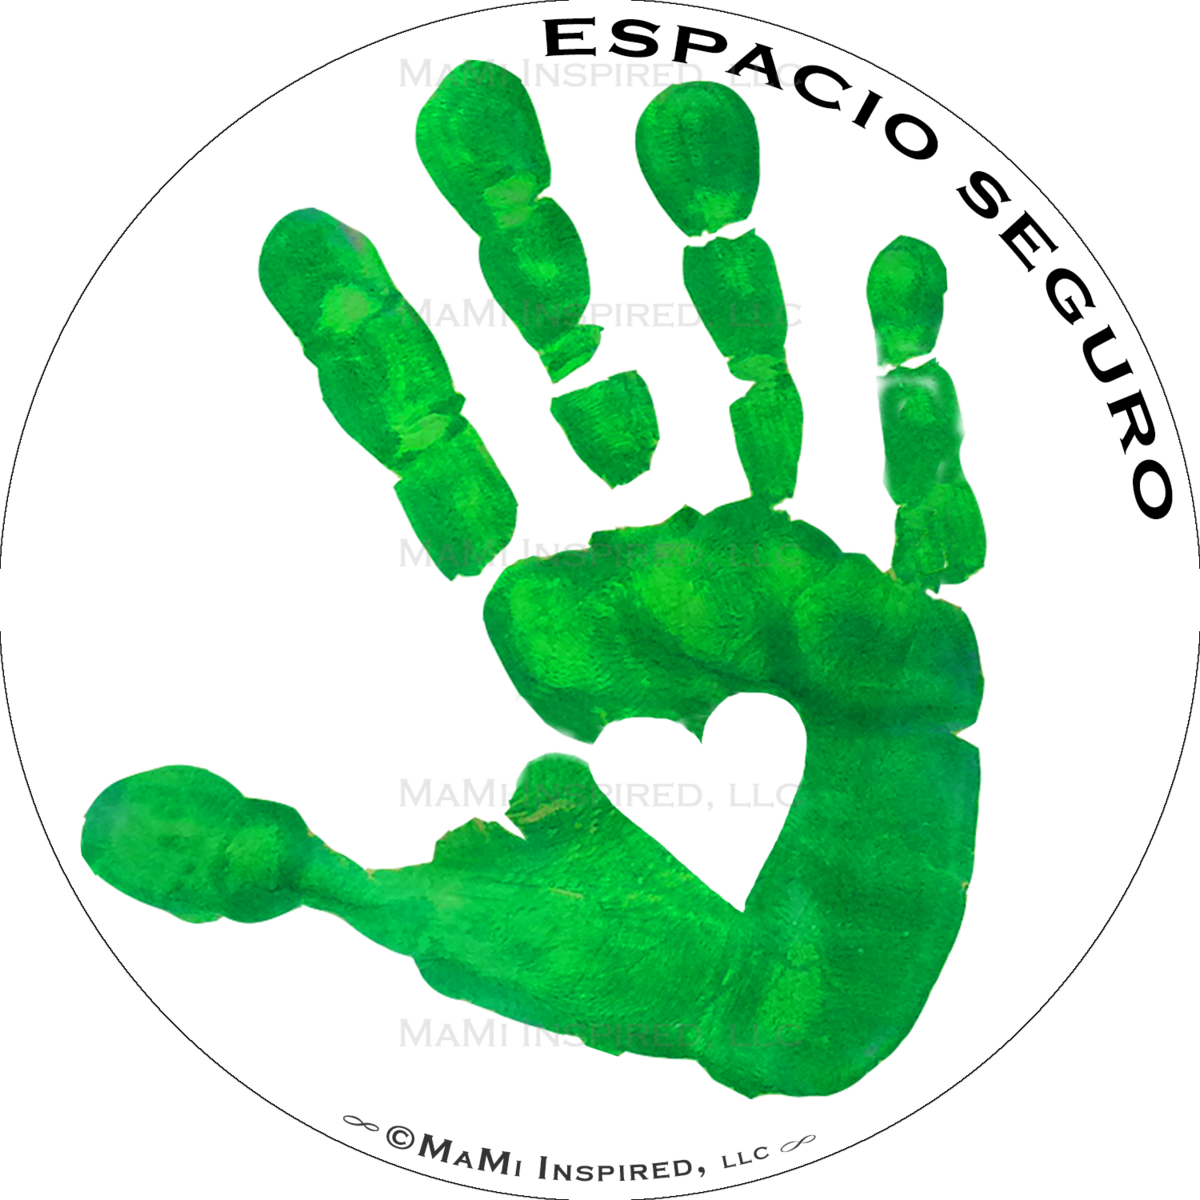 Handprint transparent digital. Espacio seguro spanish safety